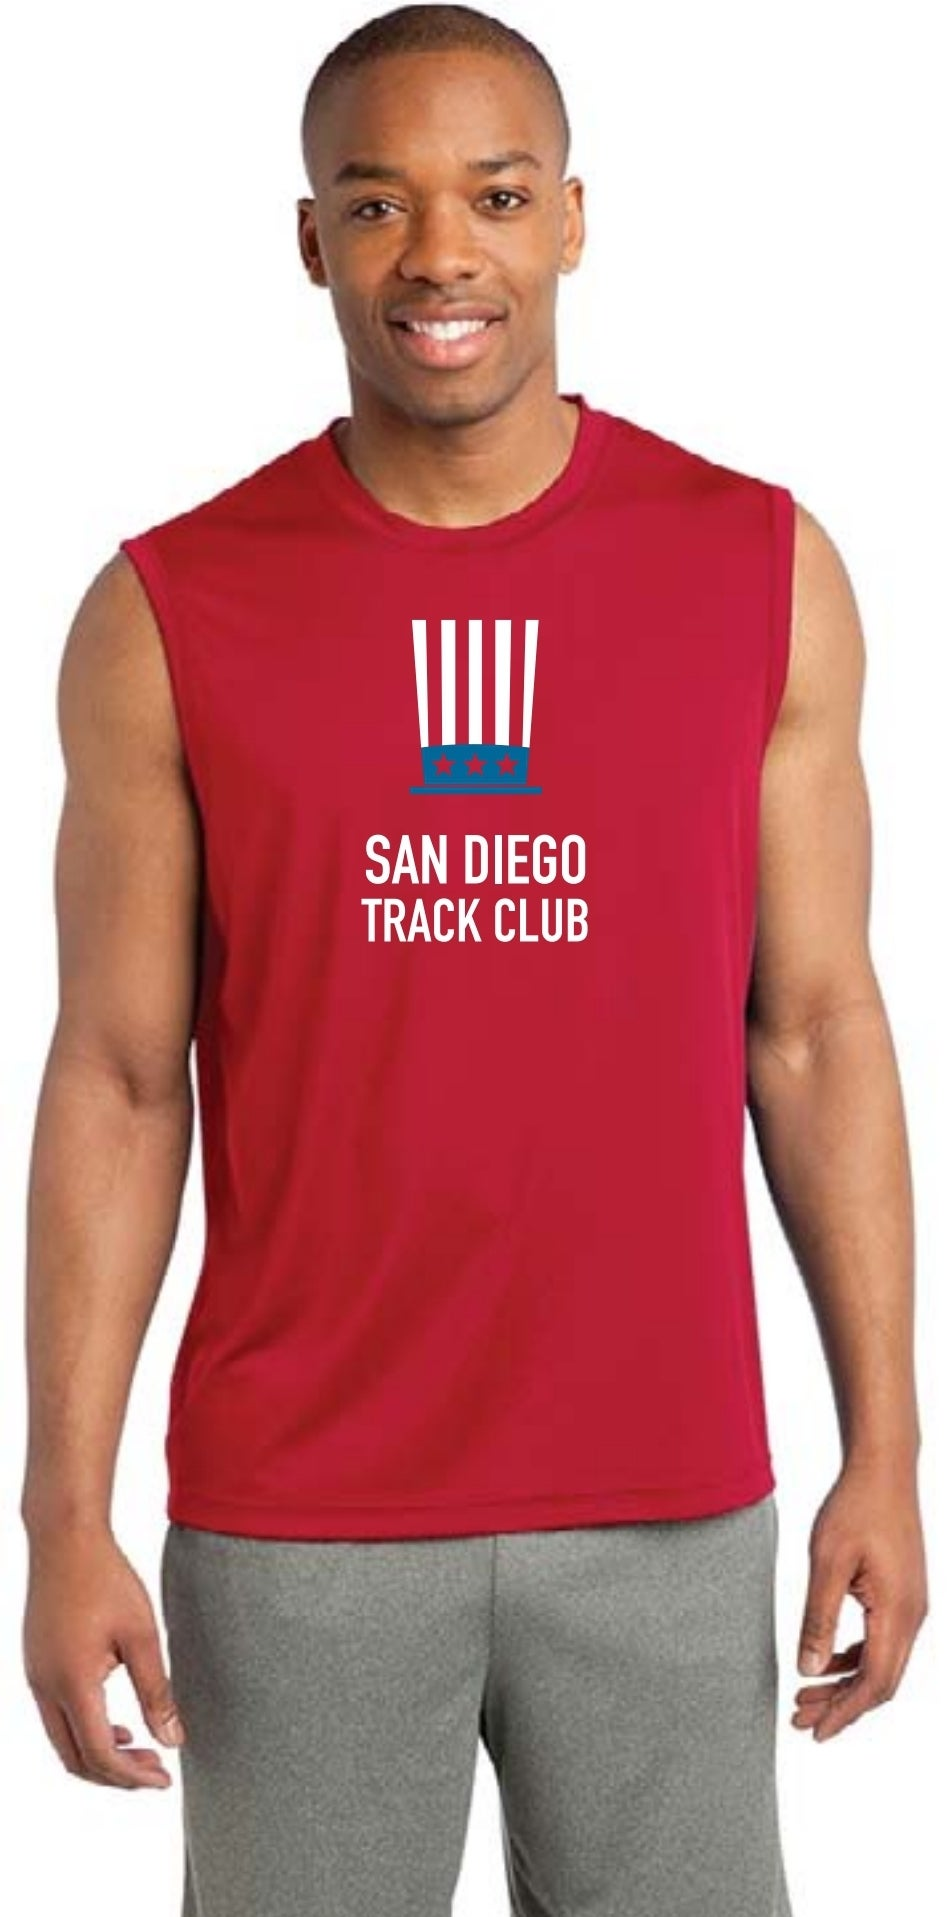 Stars and Stripes Shirt/Singlet